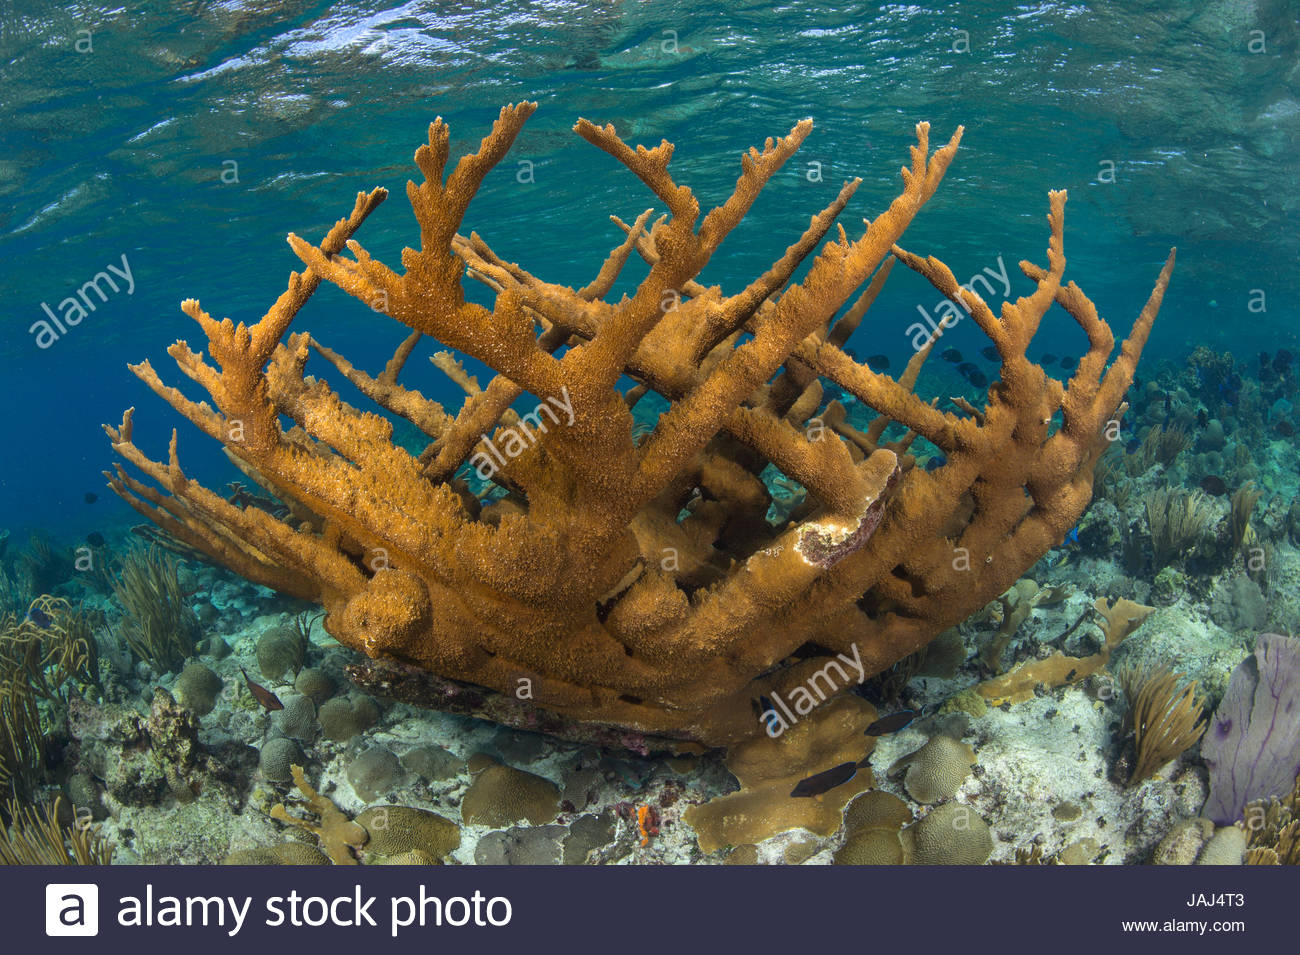 Elkhorn corals in the protected waters of Buck Island National Monument. - Stock Image